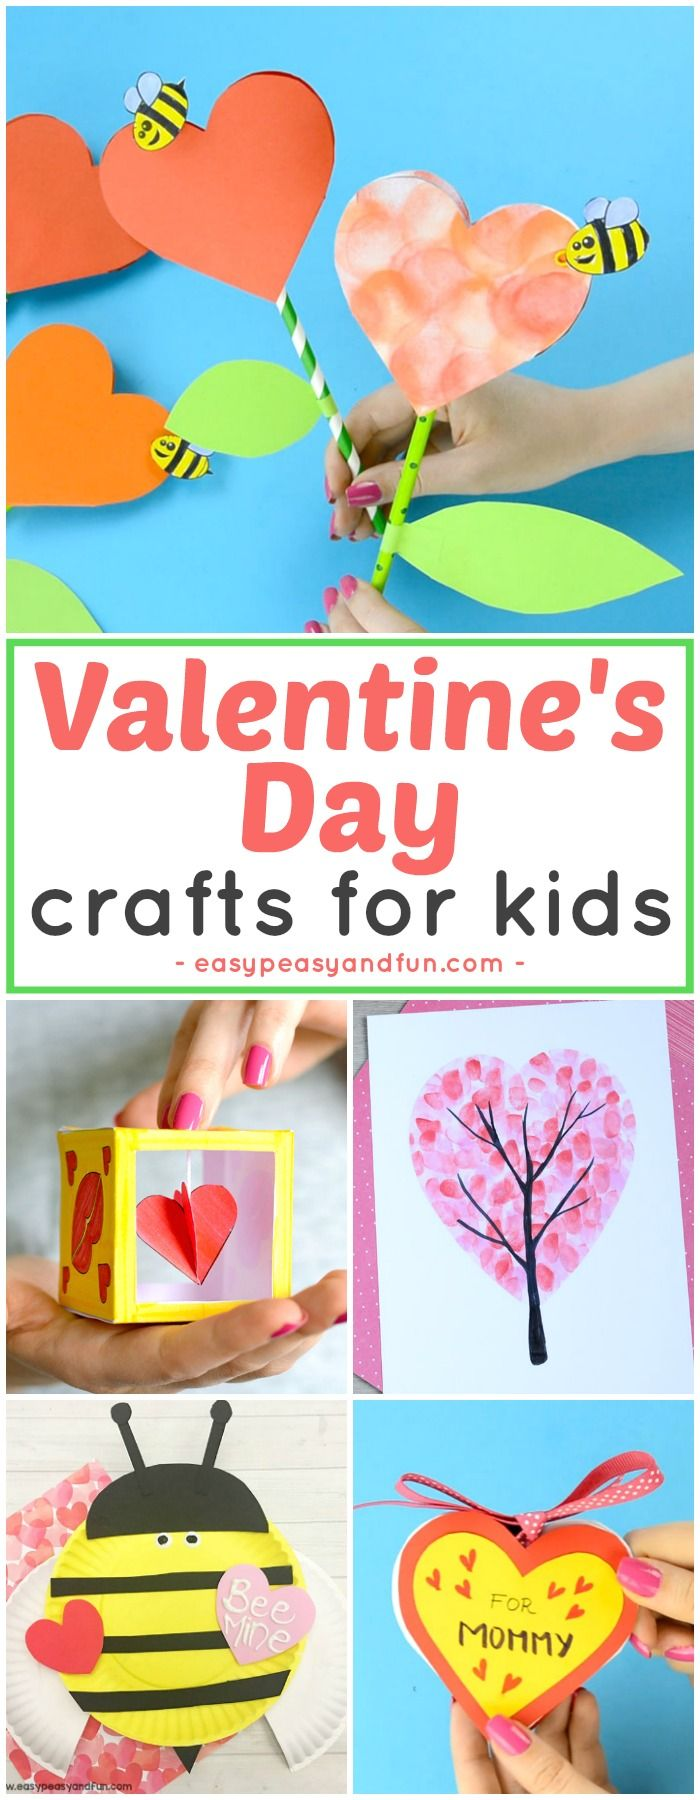 Fun Valentine's Day crafts for kids. Art and craft ideas and crafts with templates for all ages.